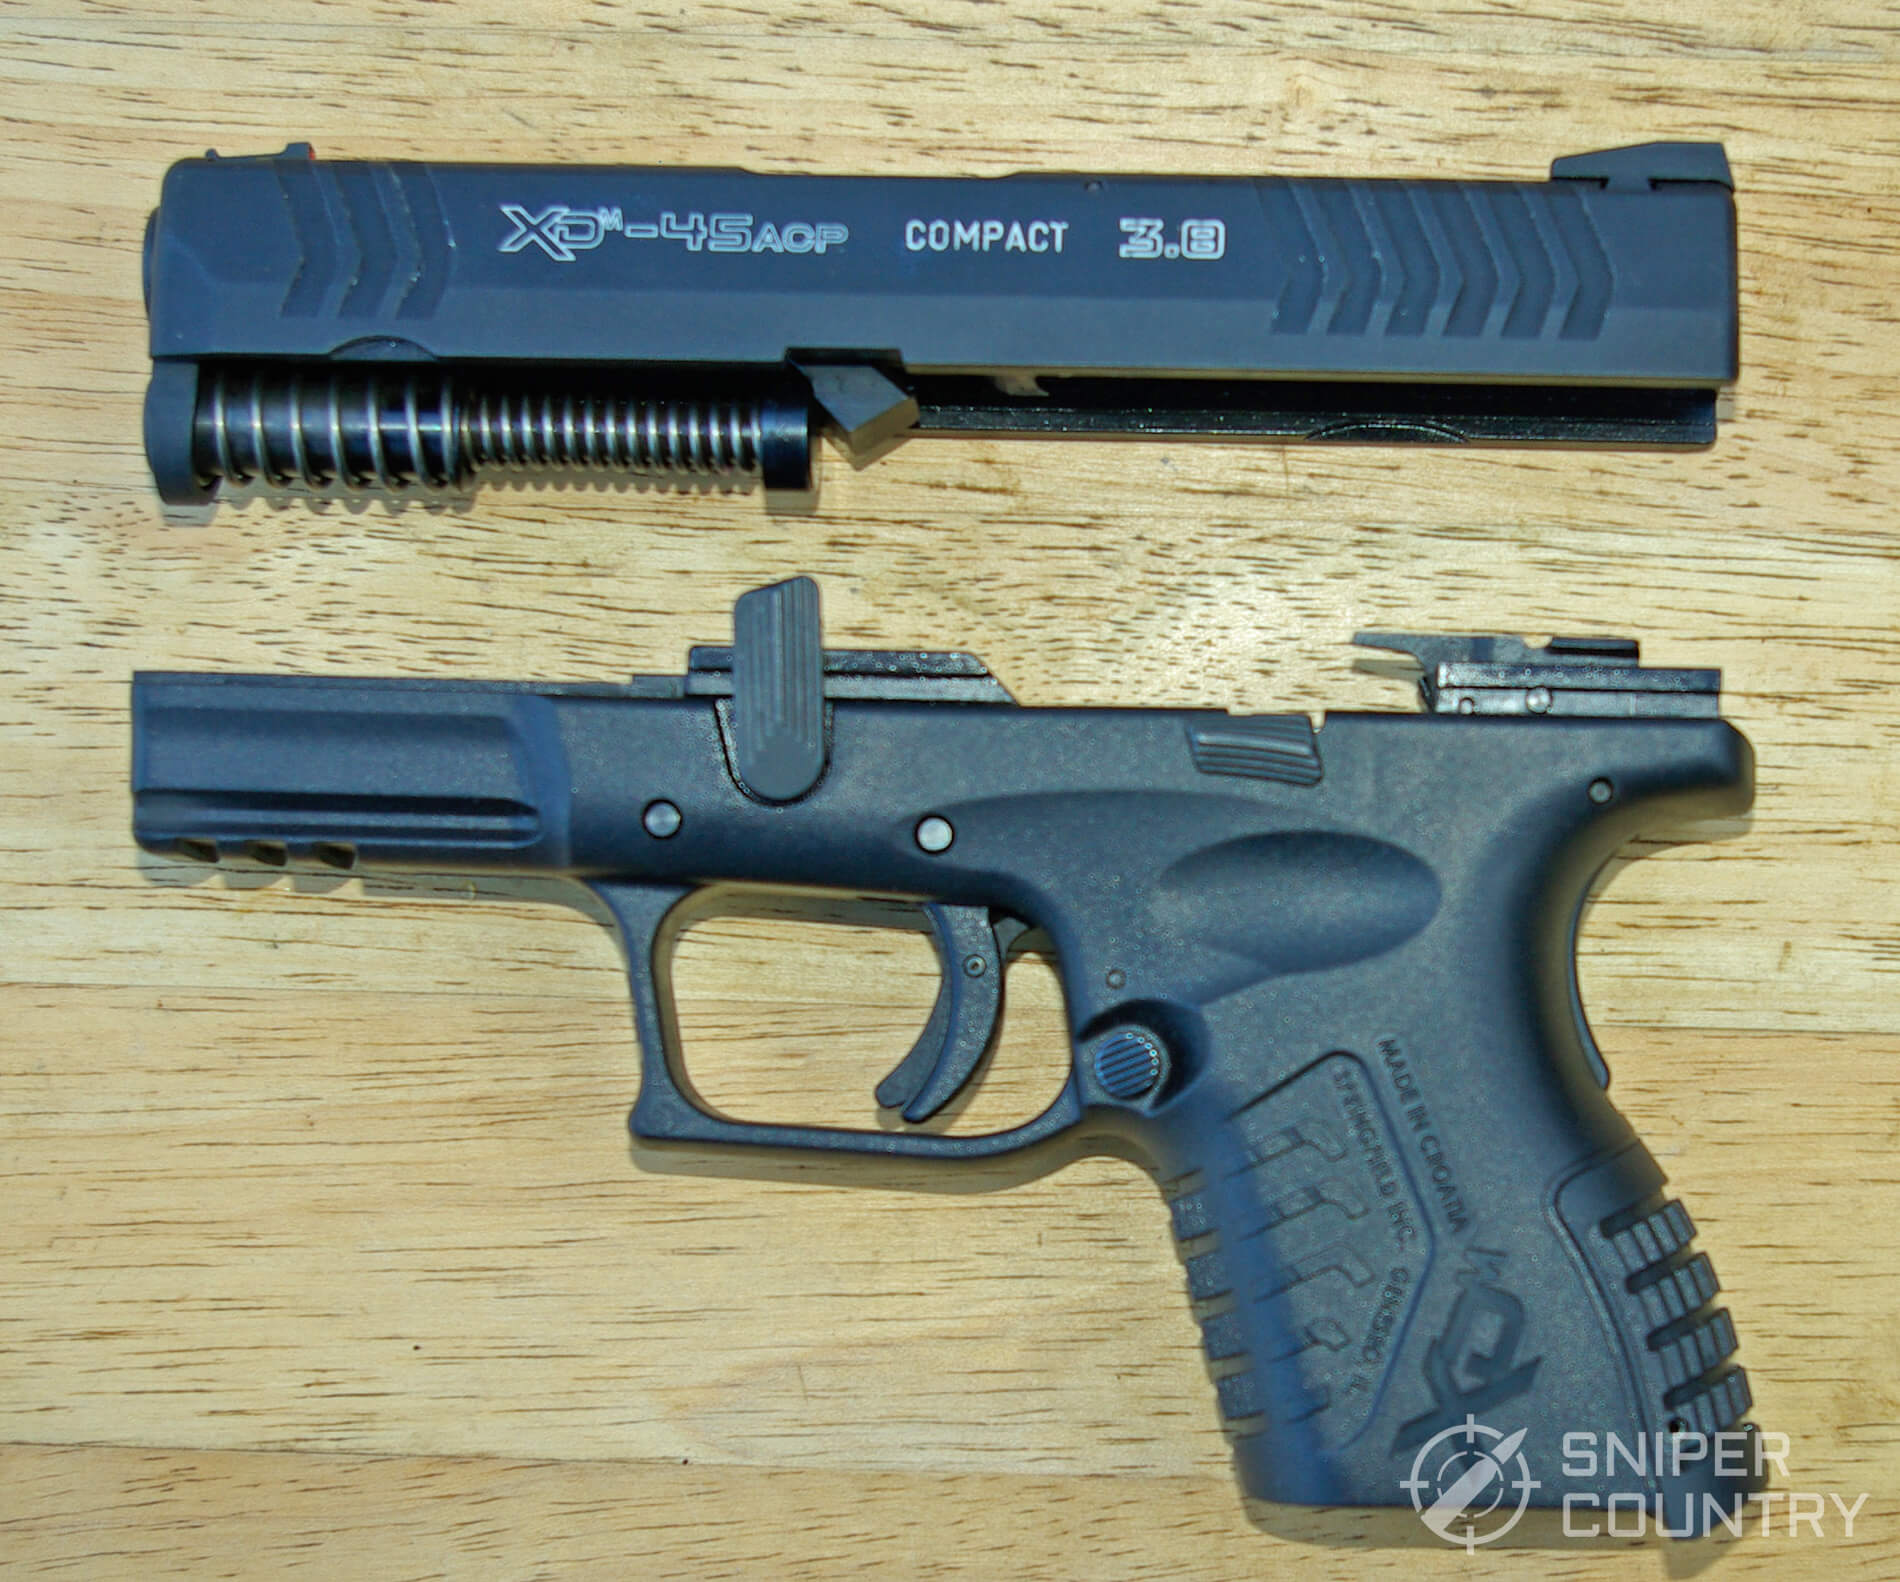 Springfield XDM 3.8 Compact Slide-Off Frame